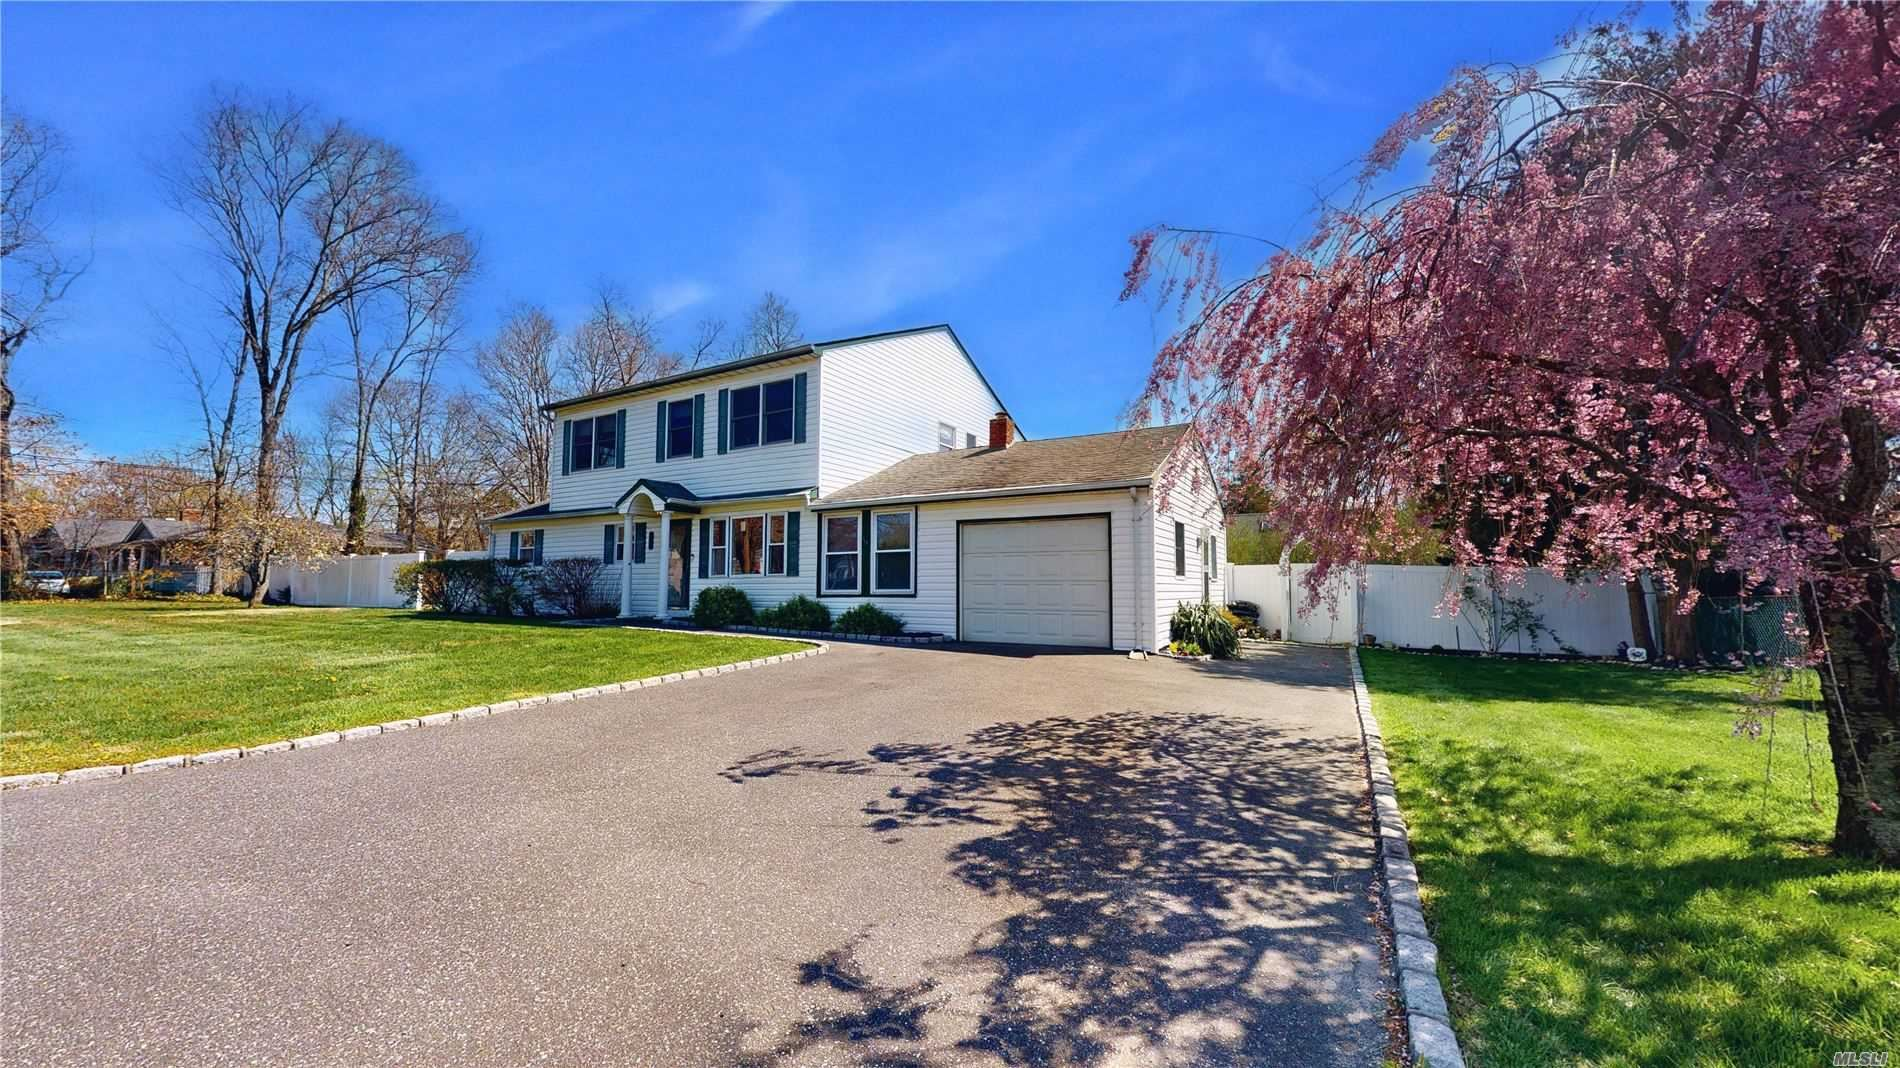 29 Artist Dr, Middle Island, NY 11953 - MLS#: 3212210